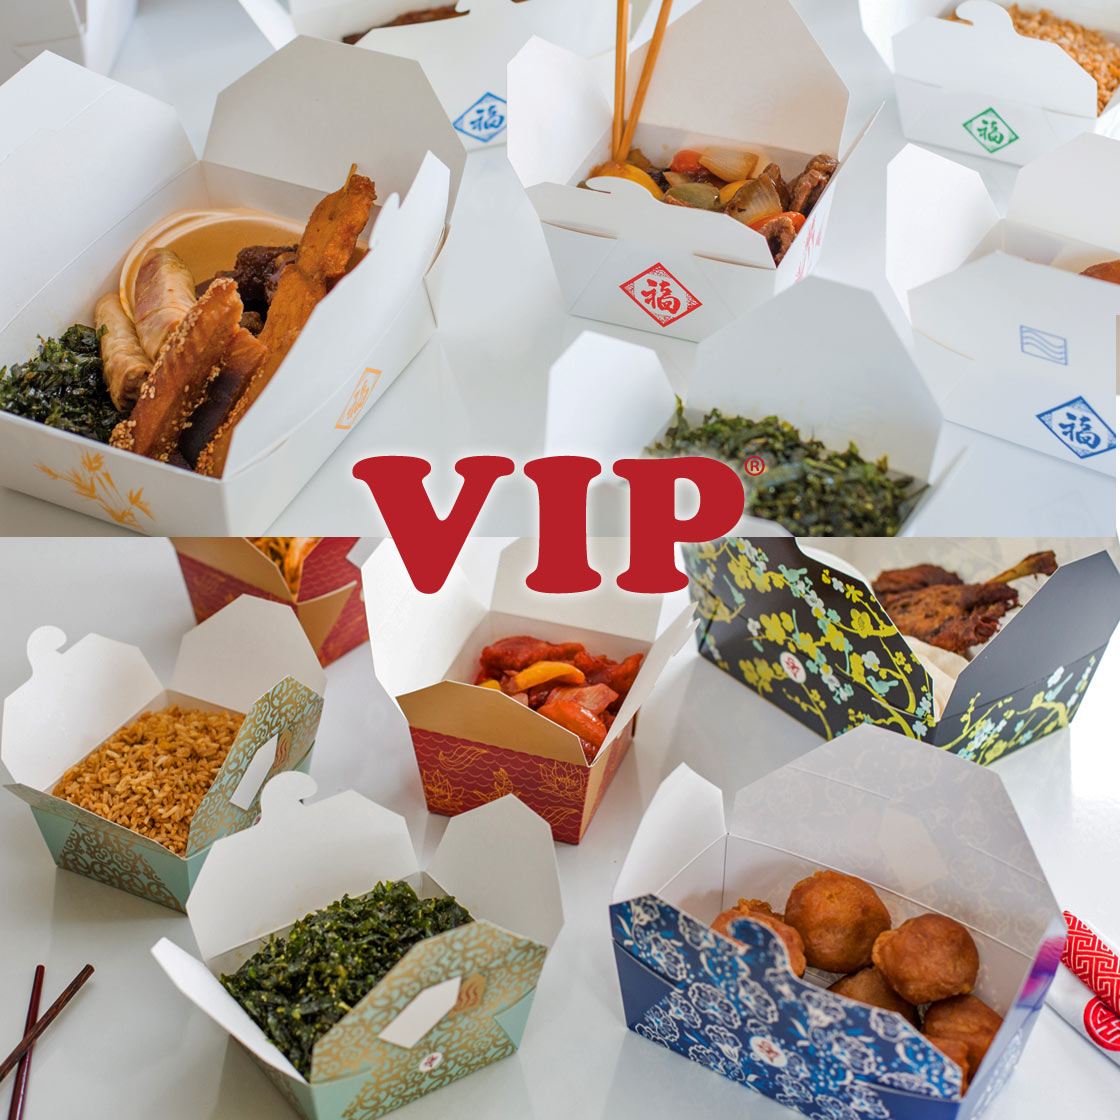 VIP takeaway packaging